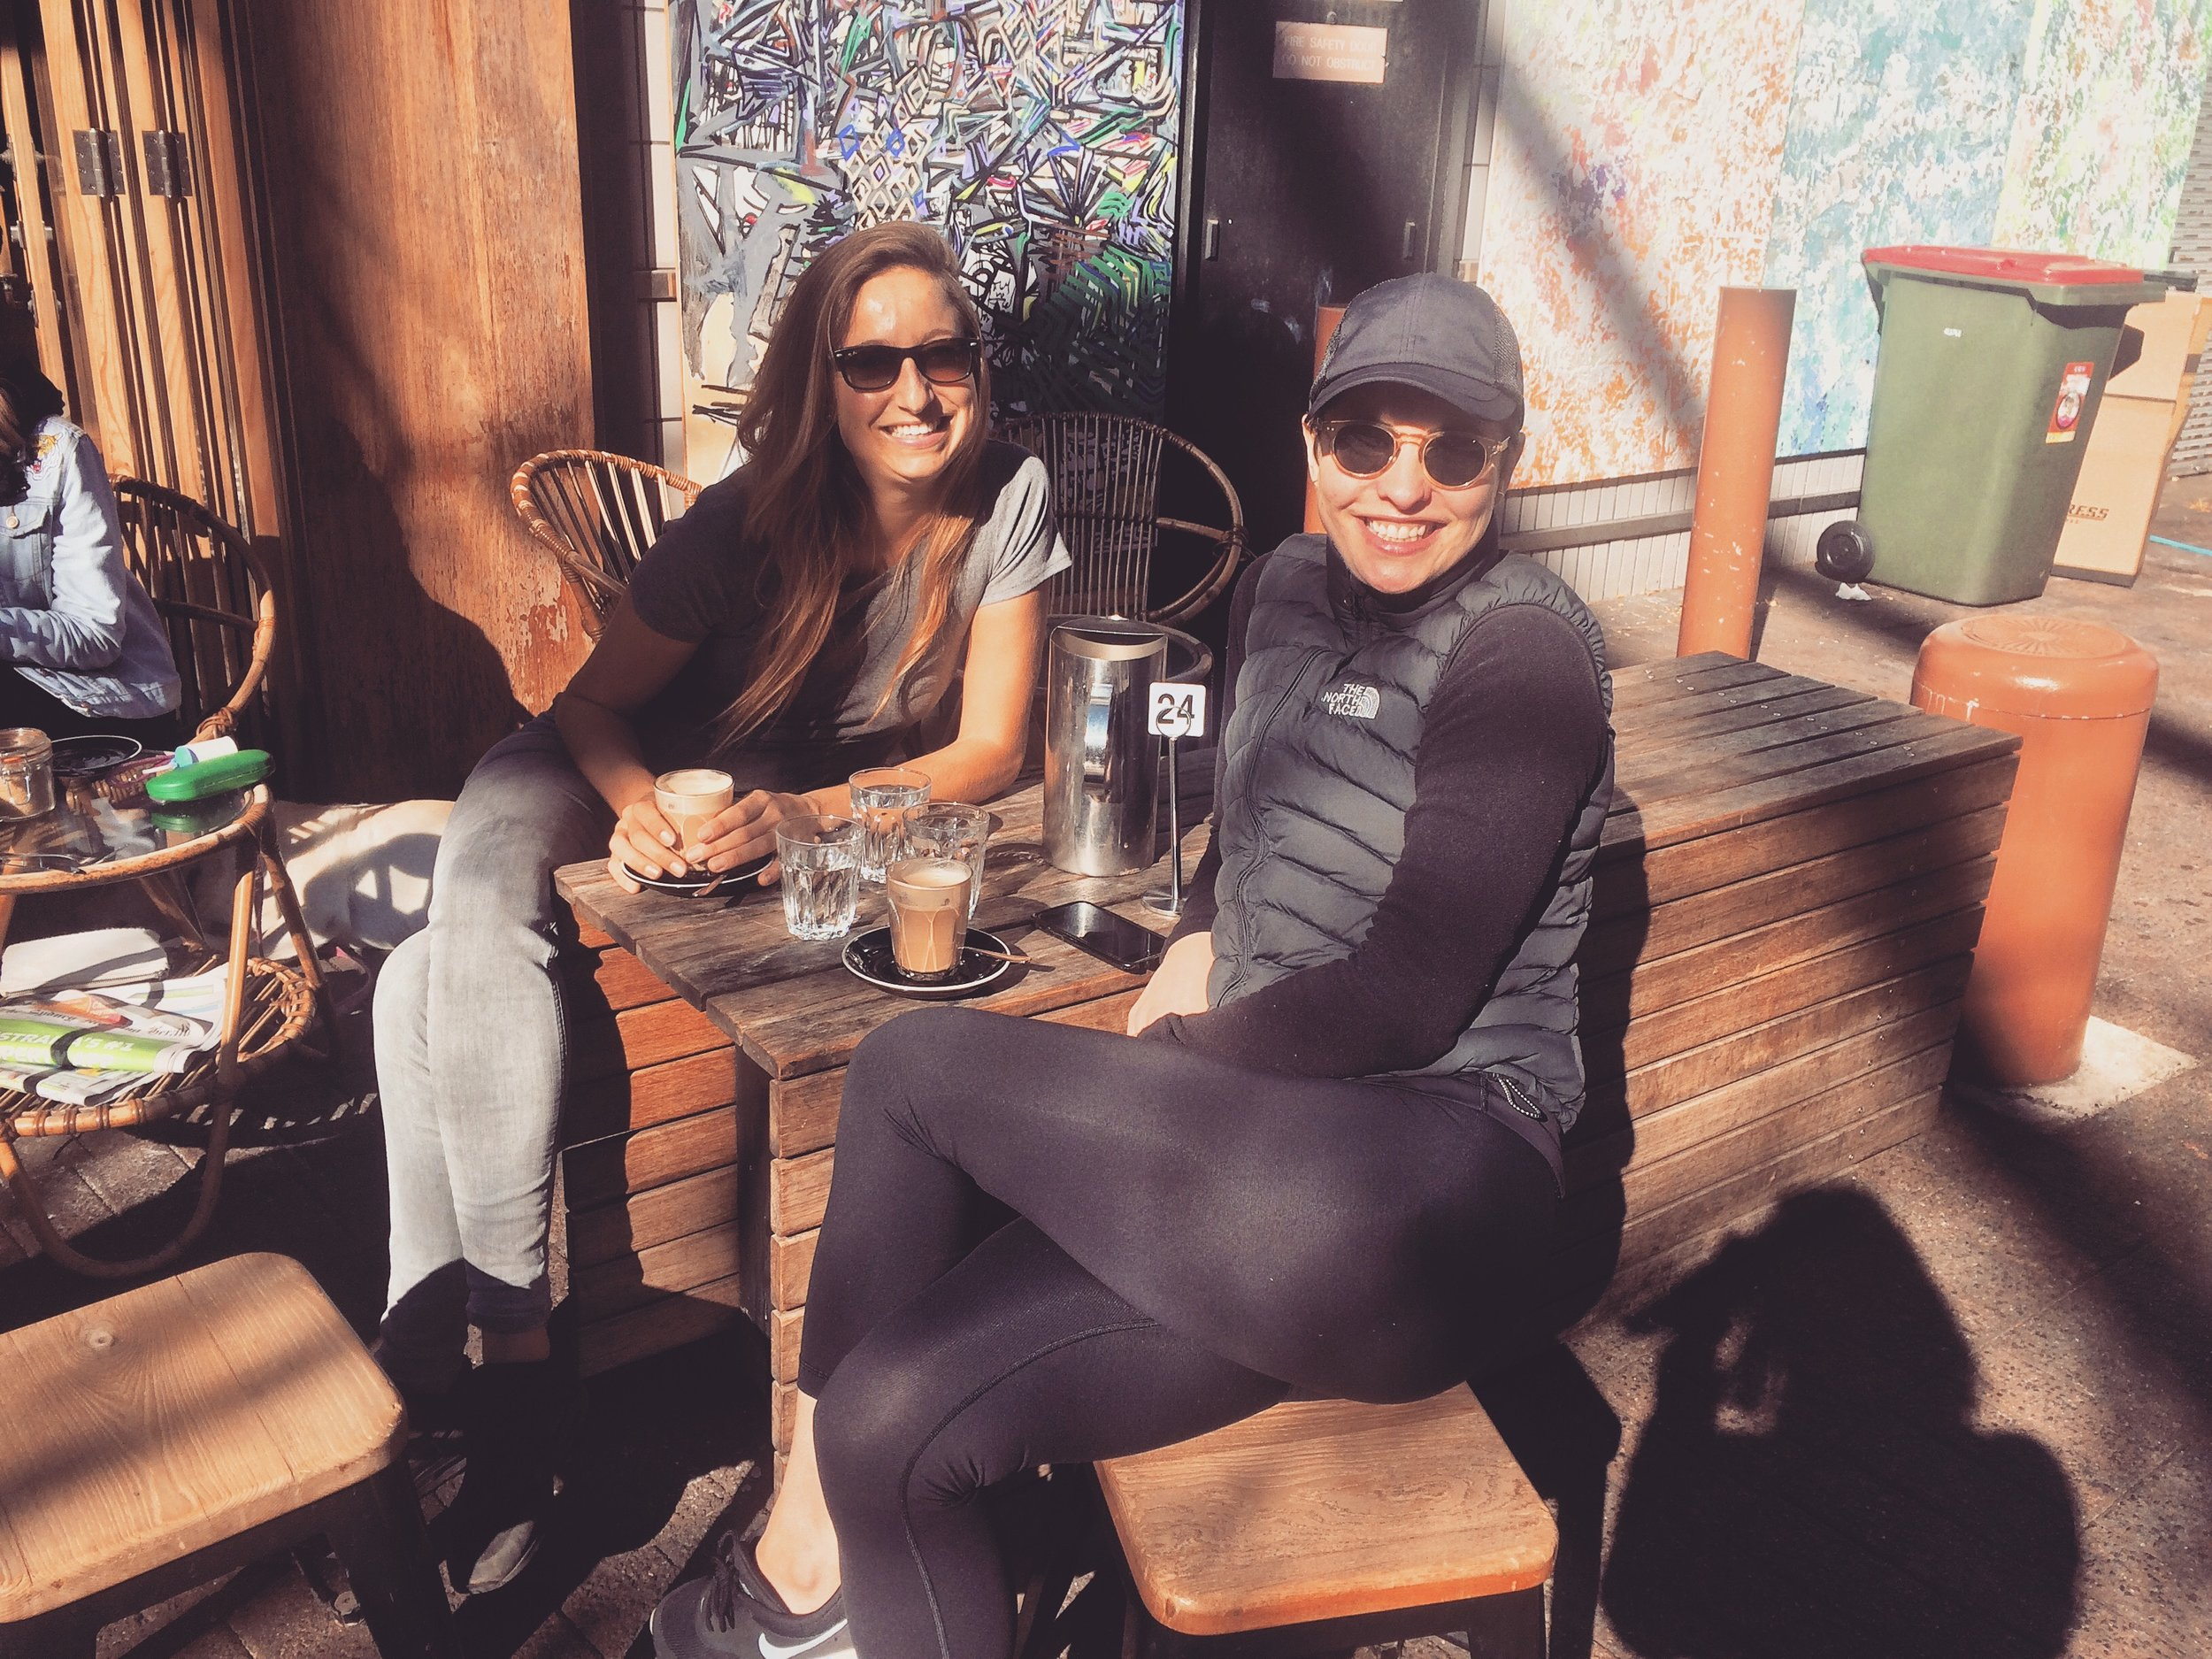 Coffee with Dominica (who did the previous YTT) in Manly, on the Northern beaches of Sydney